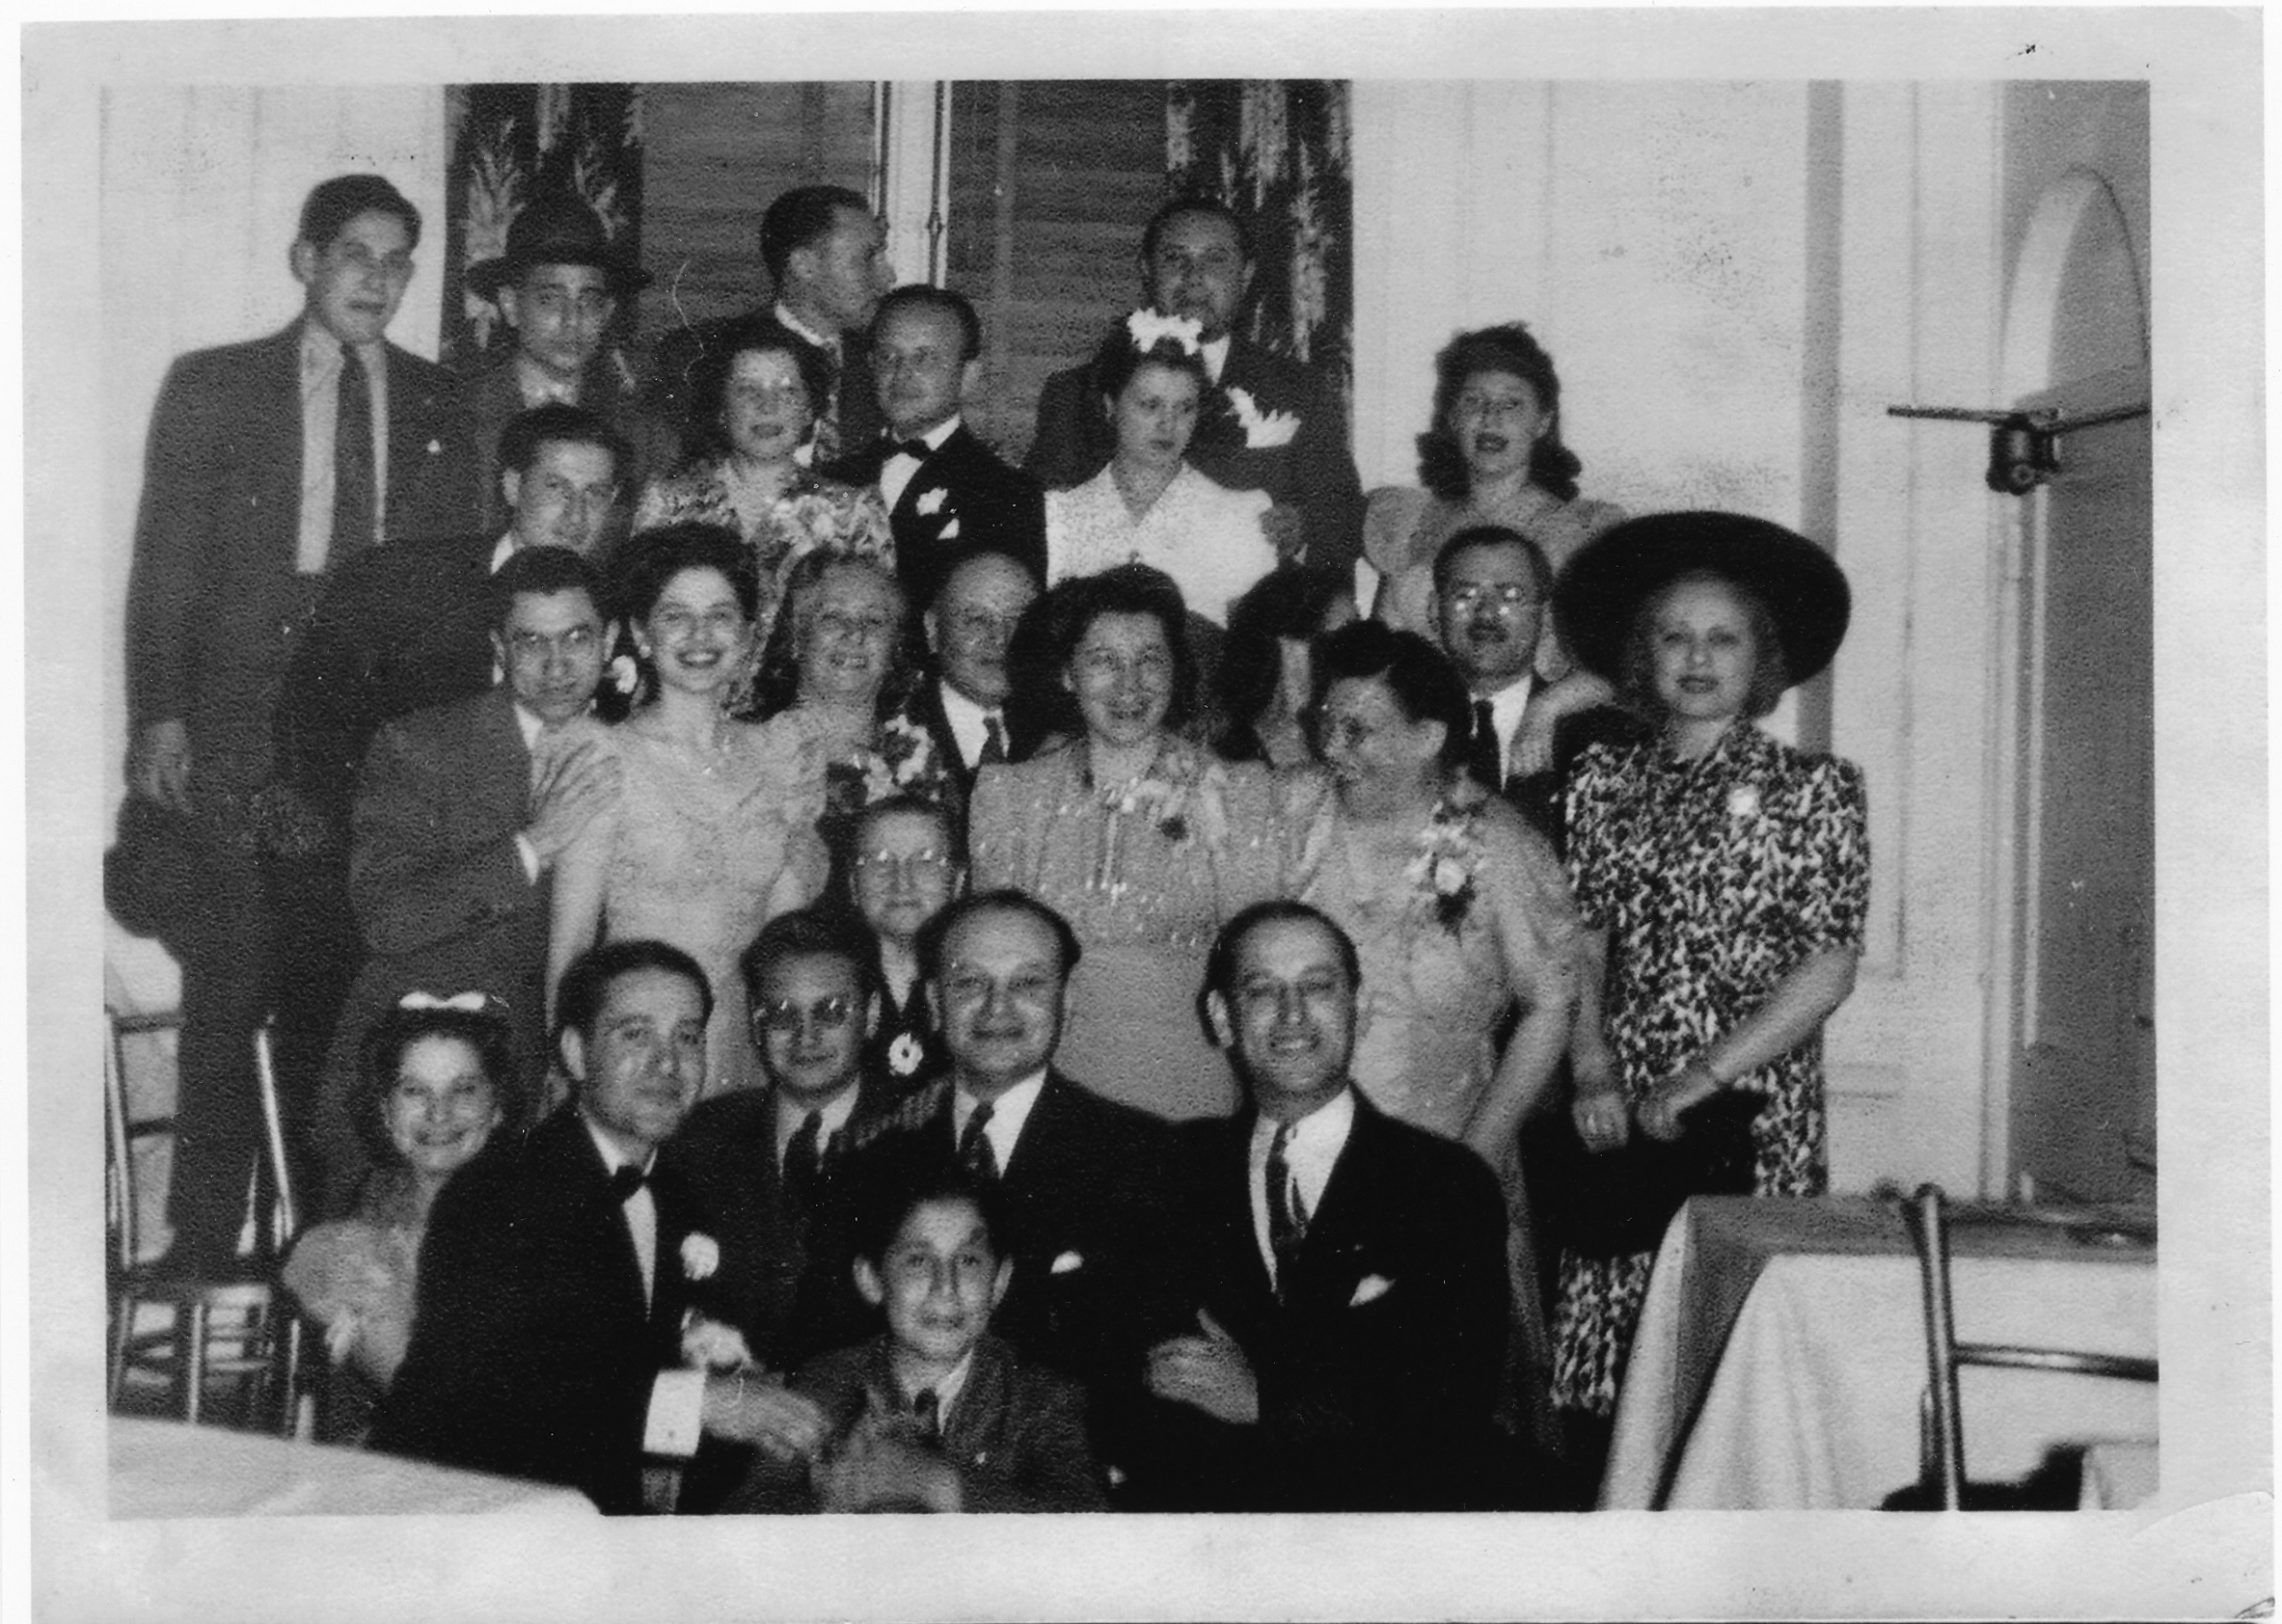 Music runs in the Woolf family's genes. This photo is from 1935.